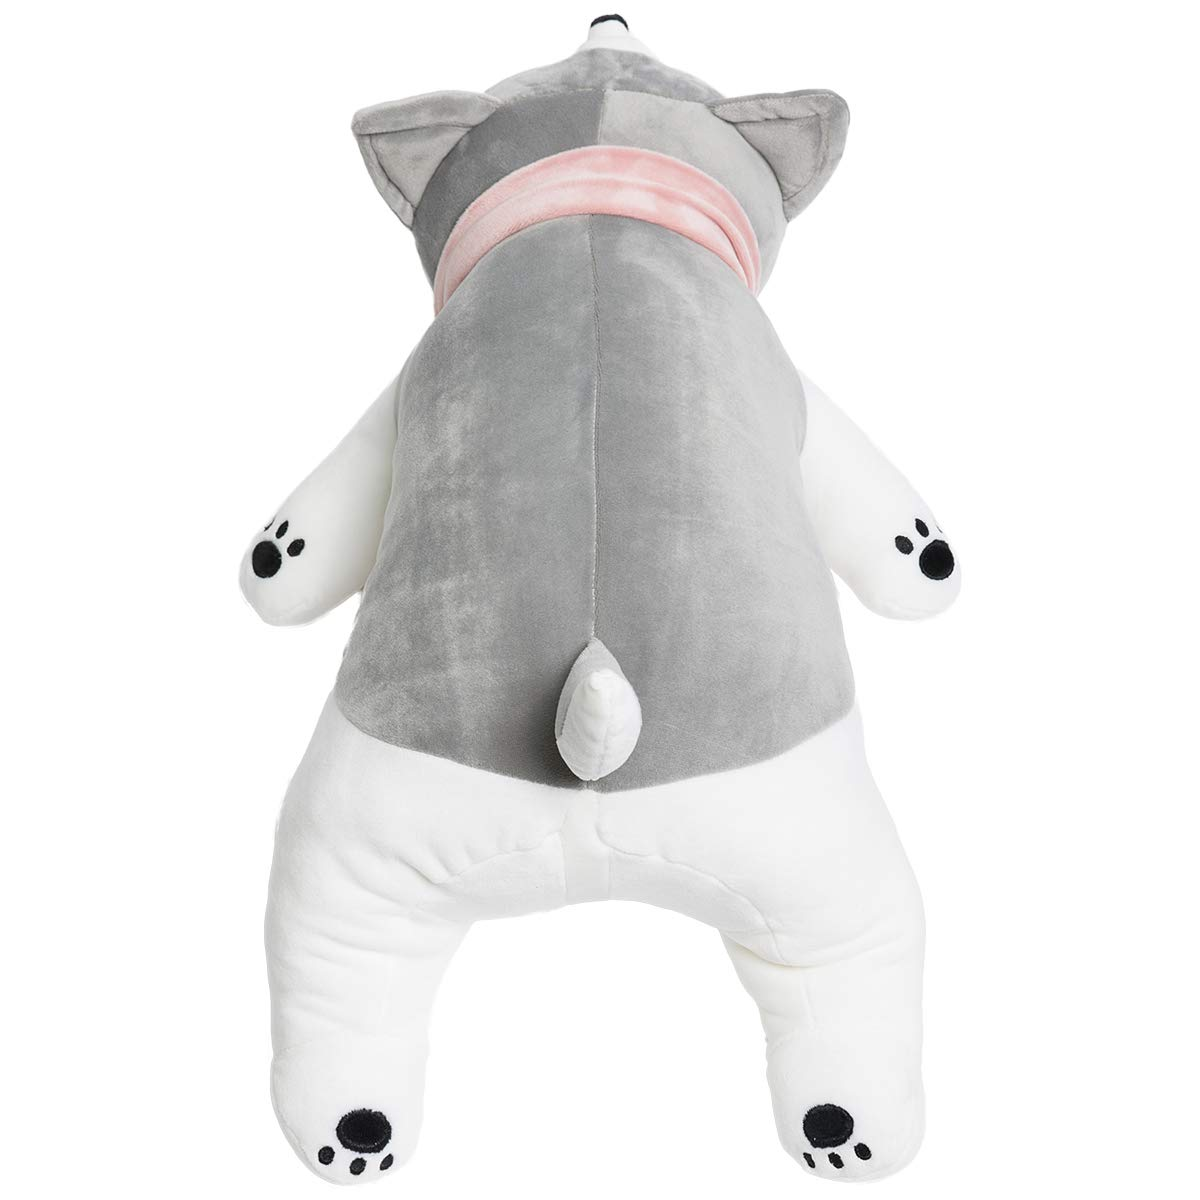 HollyHOME Stuffed Animal Dog Plush Throw Pillow 3D Siberian Husky Sleepy Eyed Baby Puppy Toy Wear Pink Scarf 22 Inches Gray